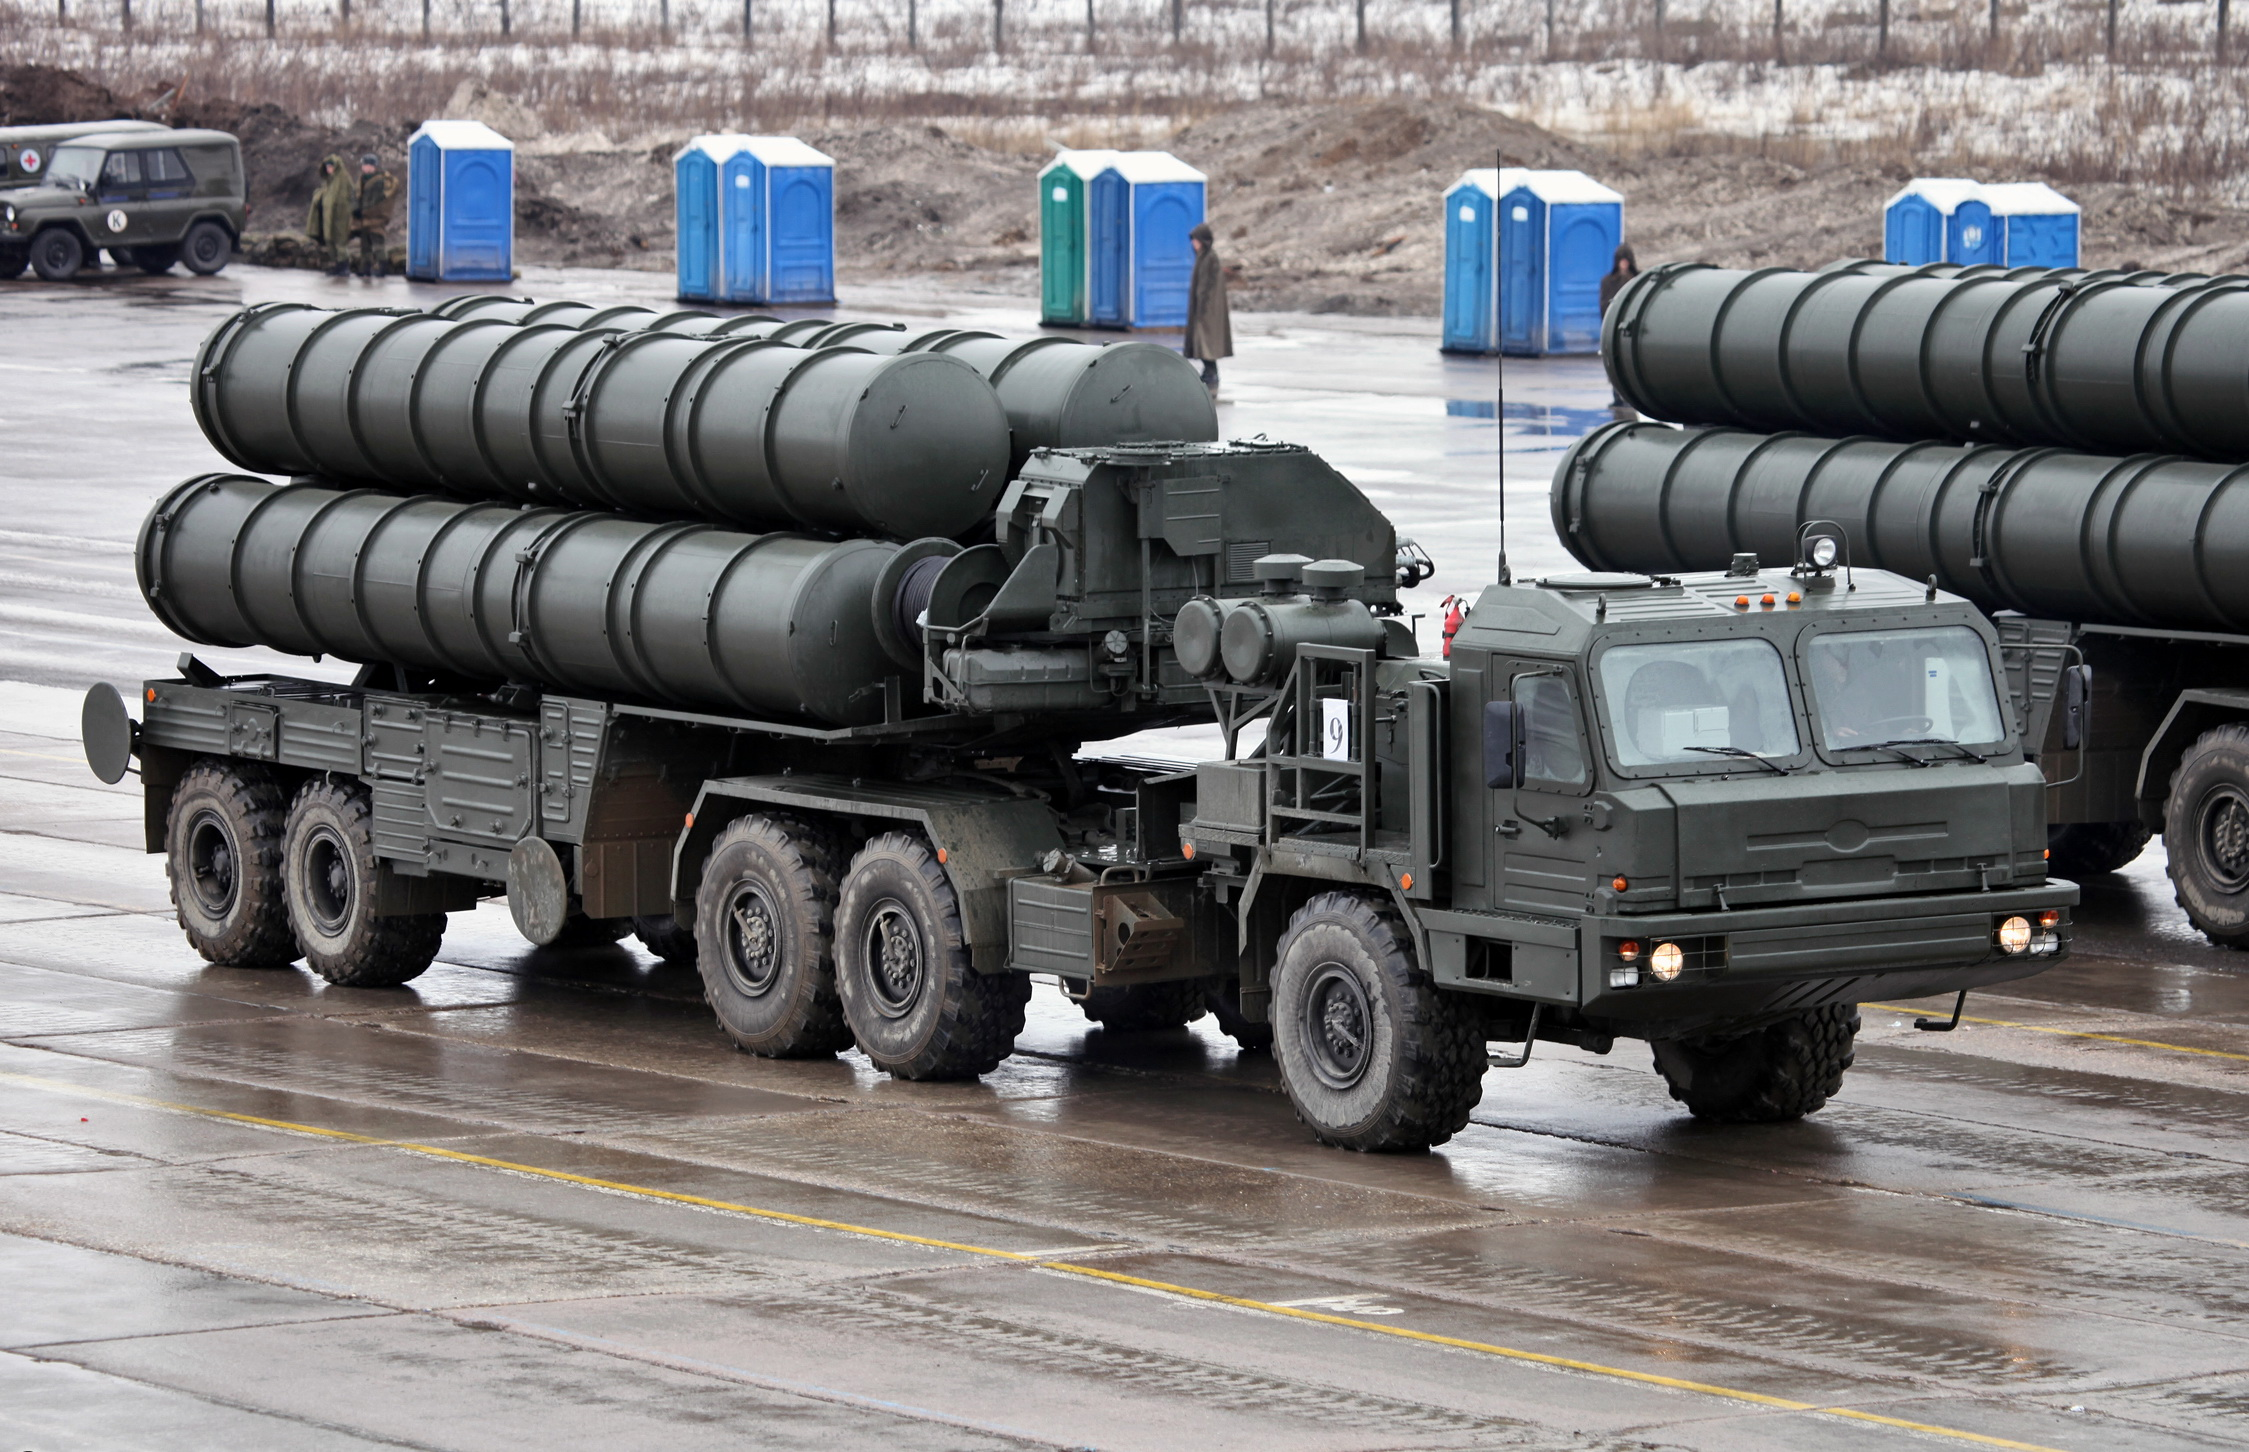 he Rs 39,000 crore deal to buy five S-400 Triumf air defence systems is high on the agenda of Modi-Putin summit.